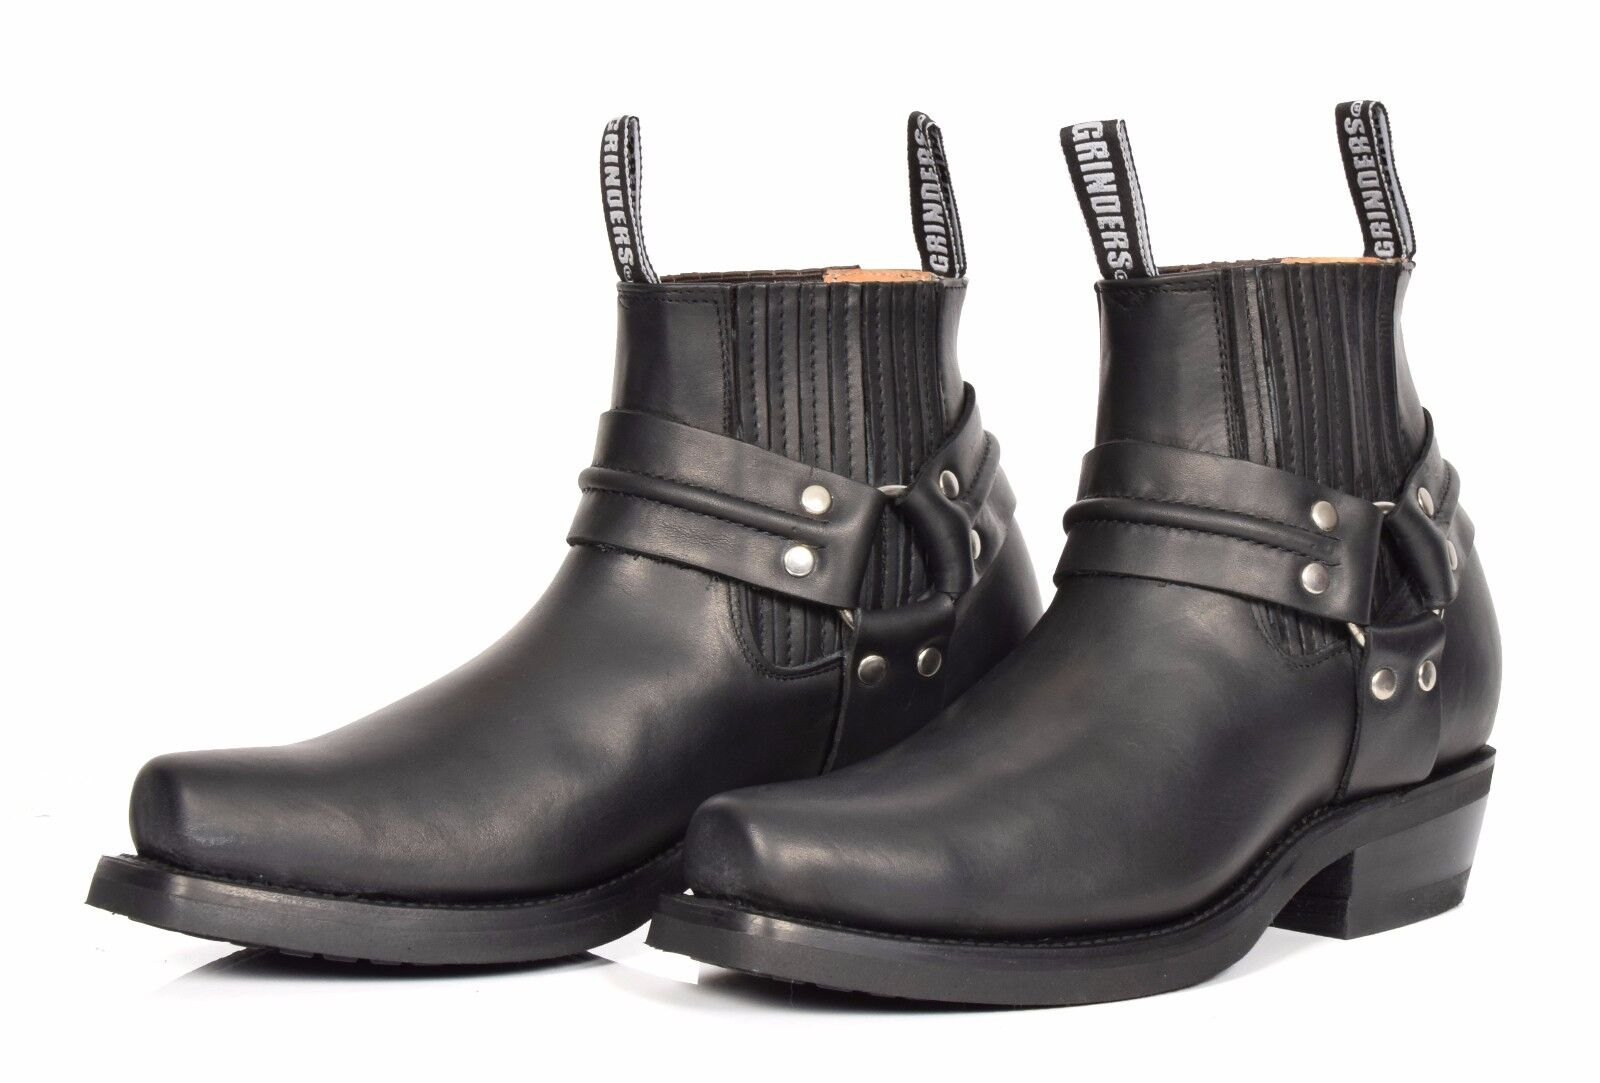 Real Leather Chelsea Boots Boots Boots Cowboy Biker Style Slip On Square Toe shoes Black 99eb15